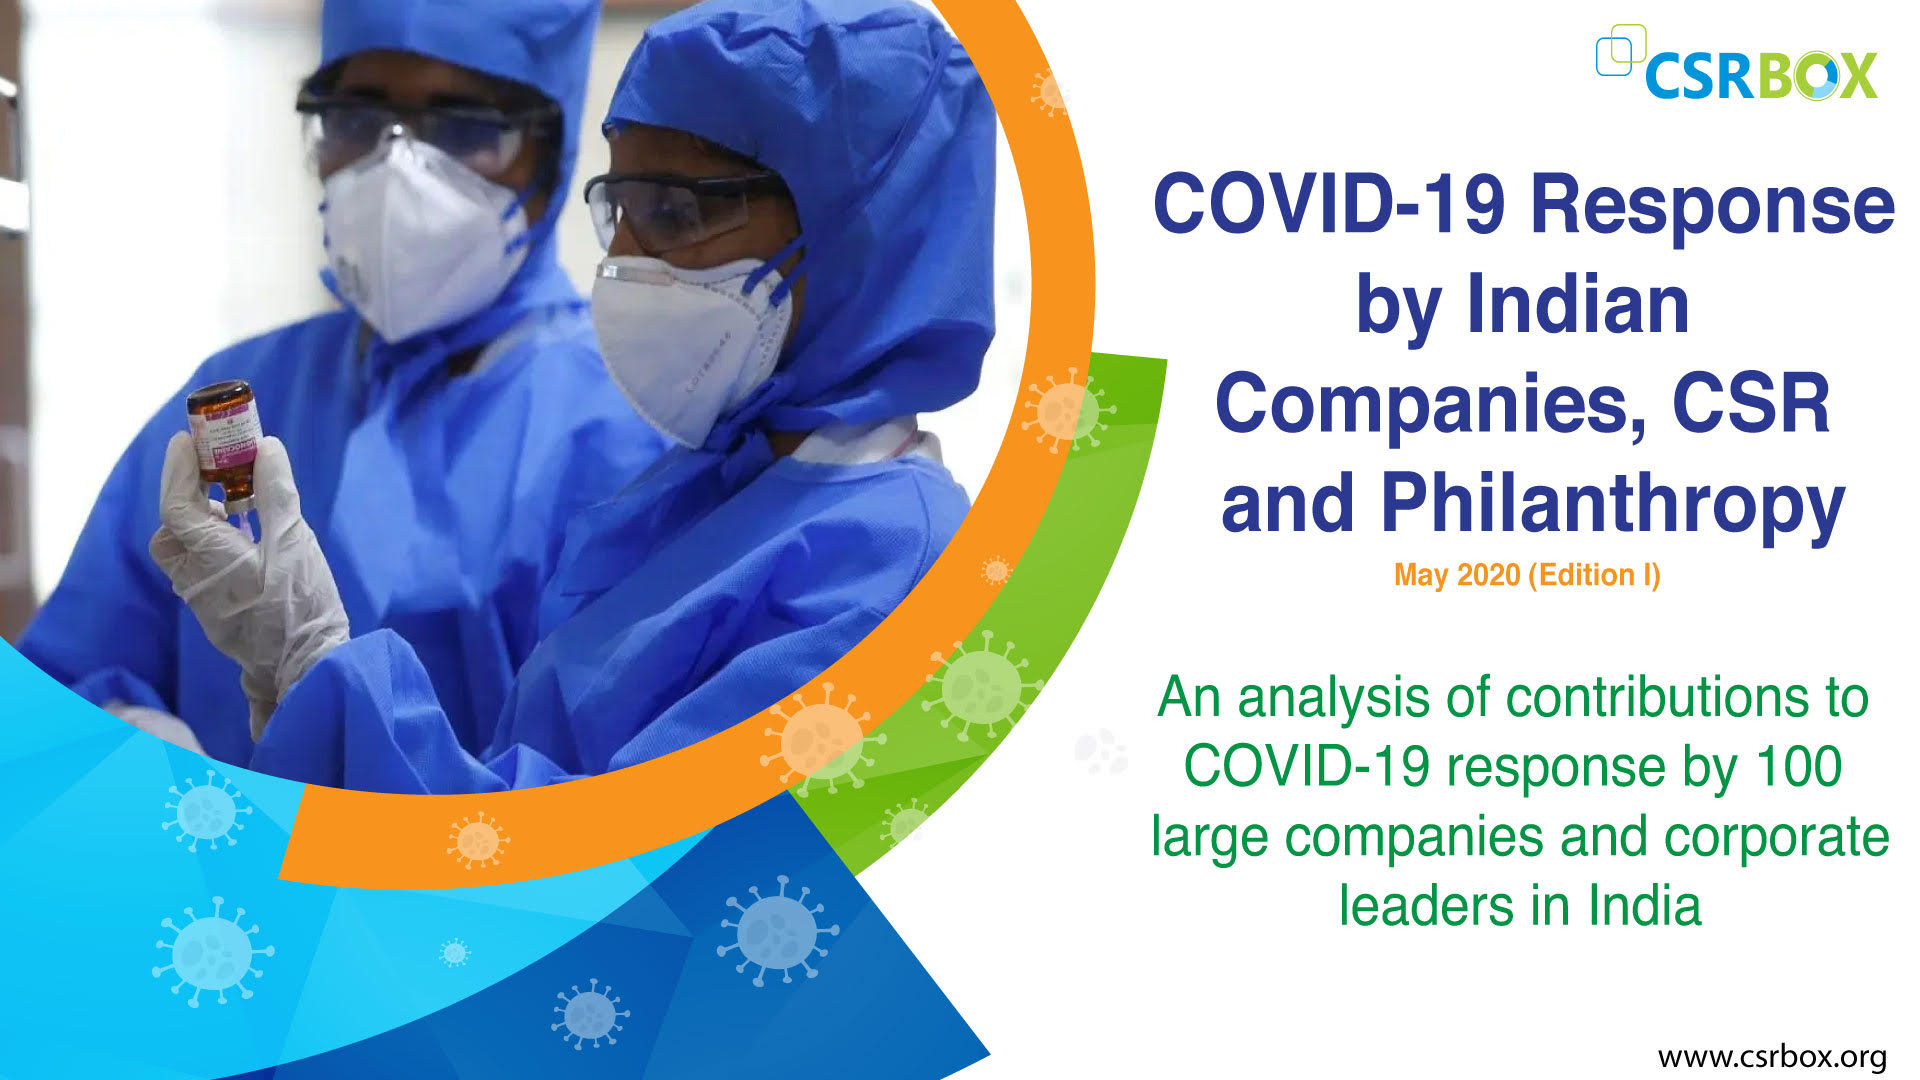 COVID-19 Response by Indian Companies, CSR and Philanthropy